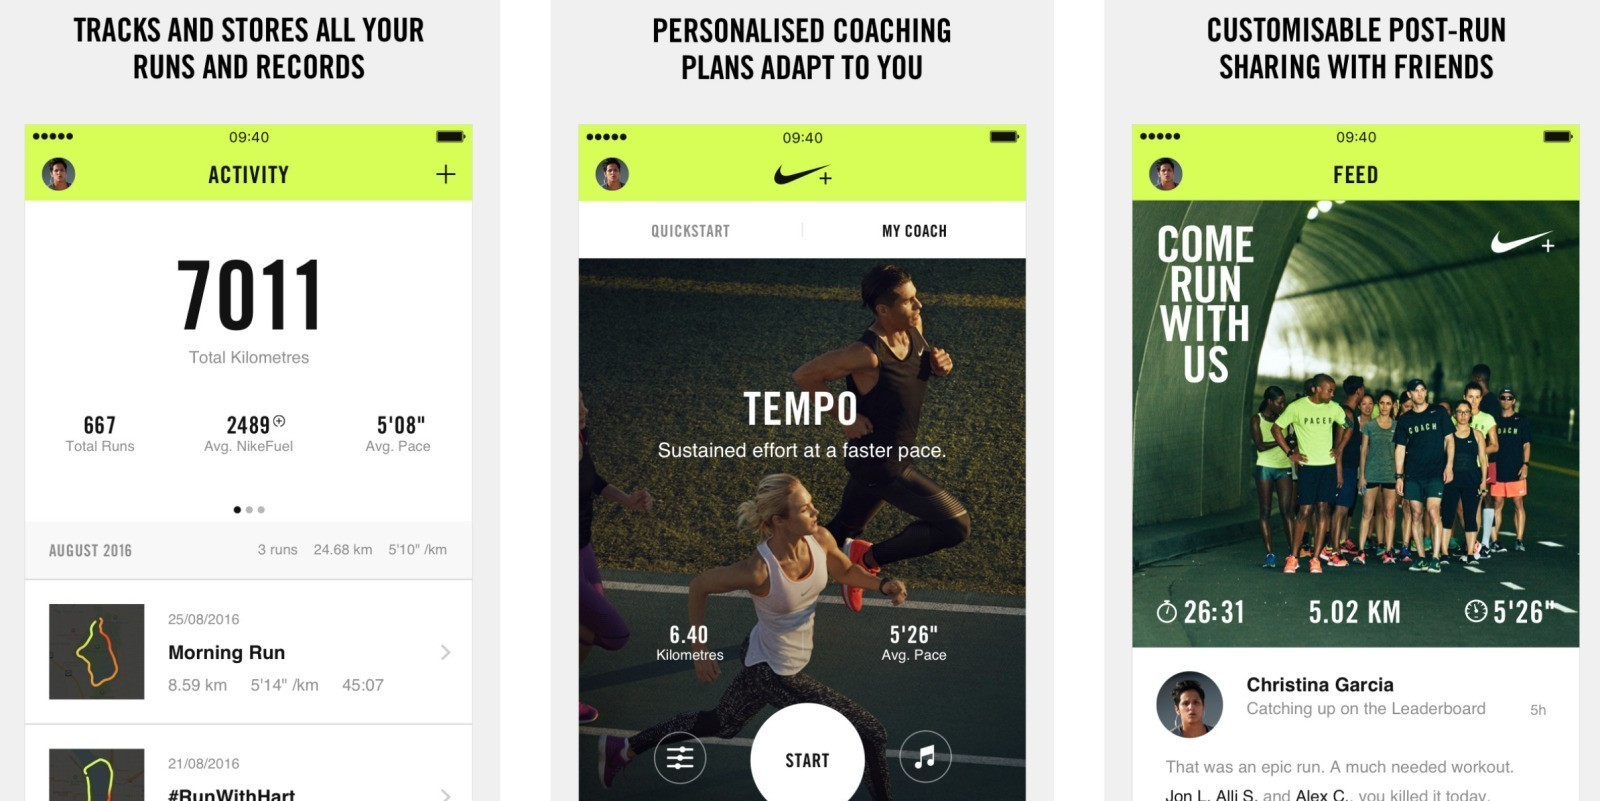 Nike+ Running rebrands, highlights tracking runs from watchOS ahead of GPS-equipped Apple Watch 2